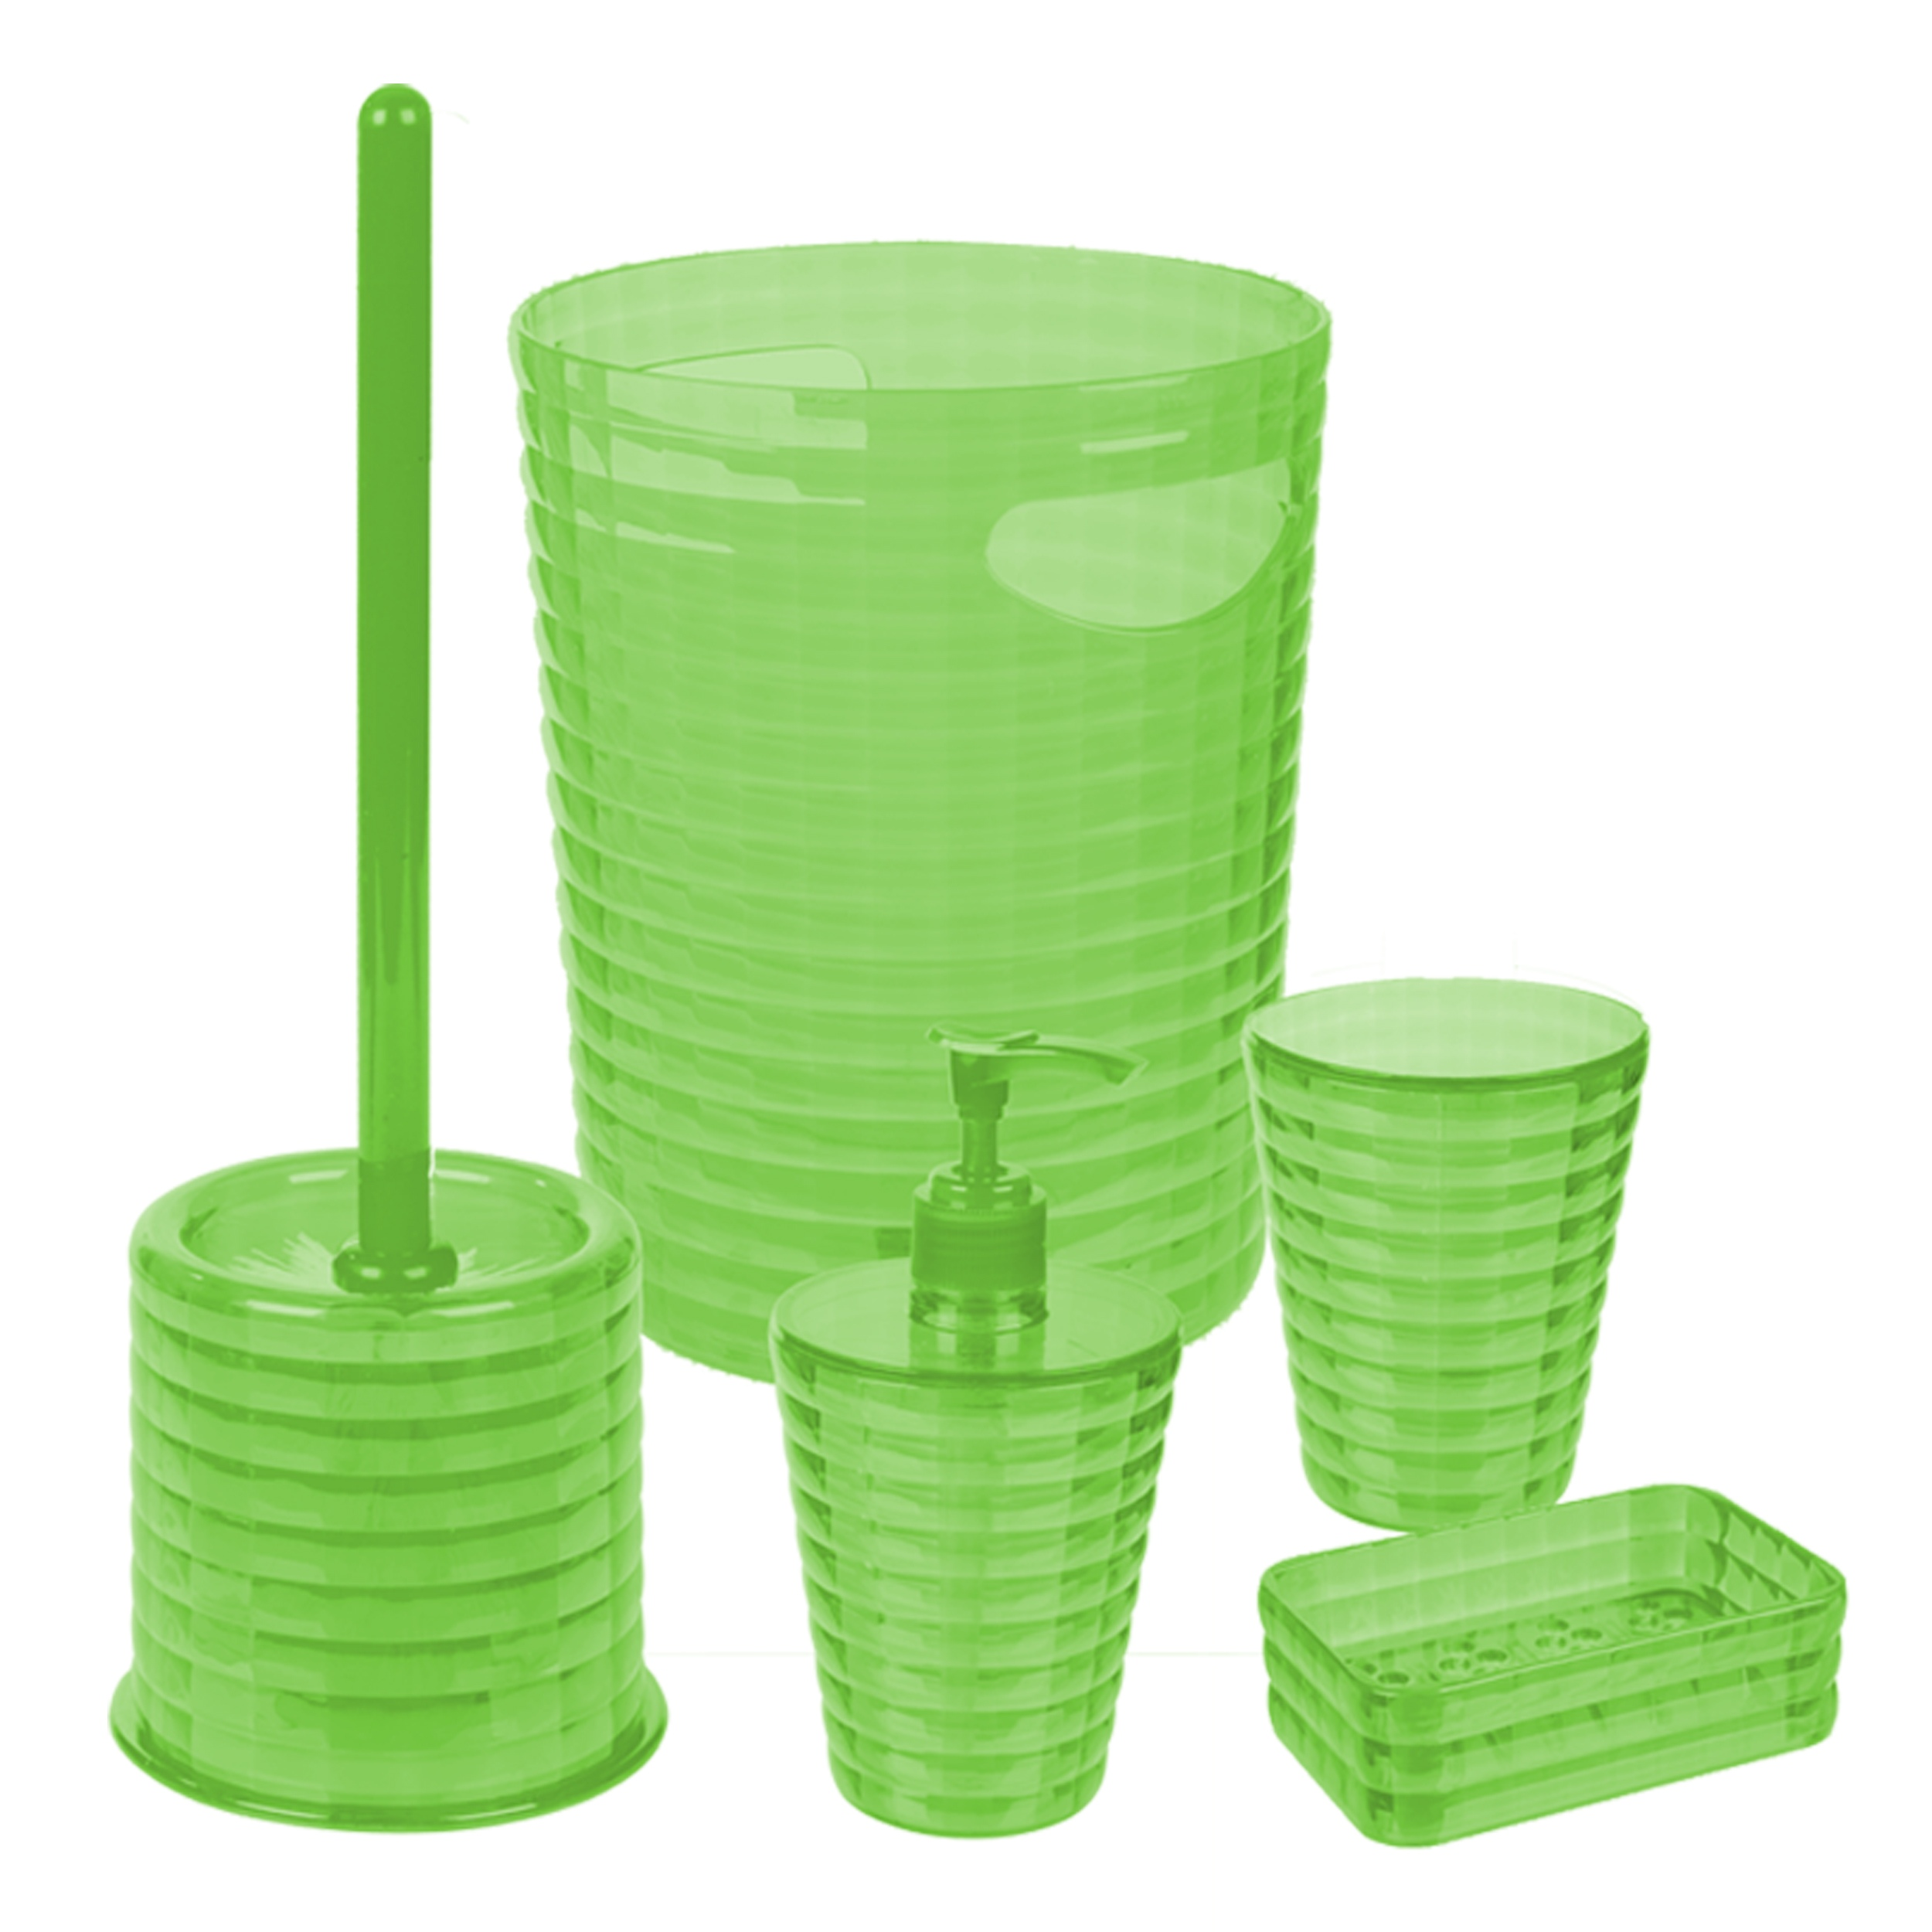 Plastic bathroom accessories uk - Item Specifics